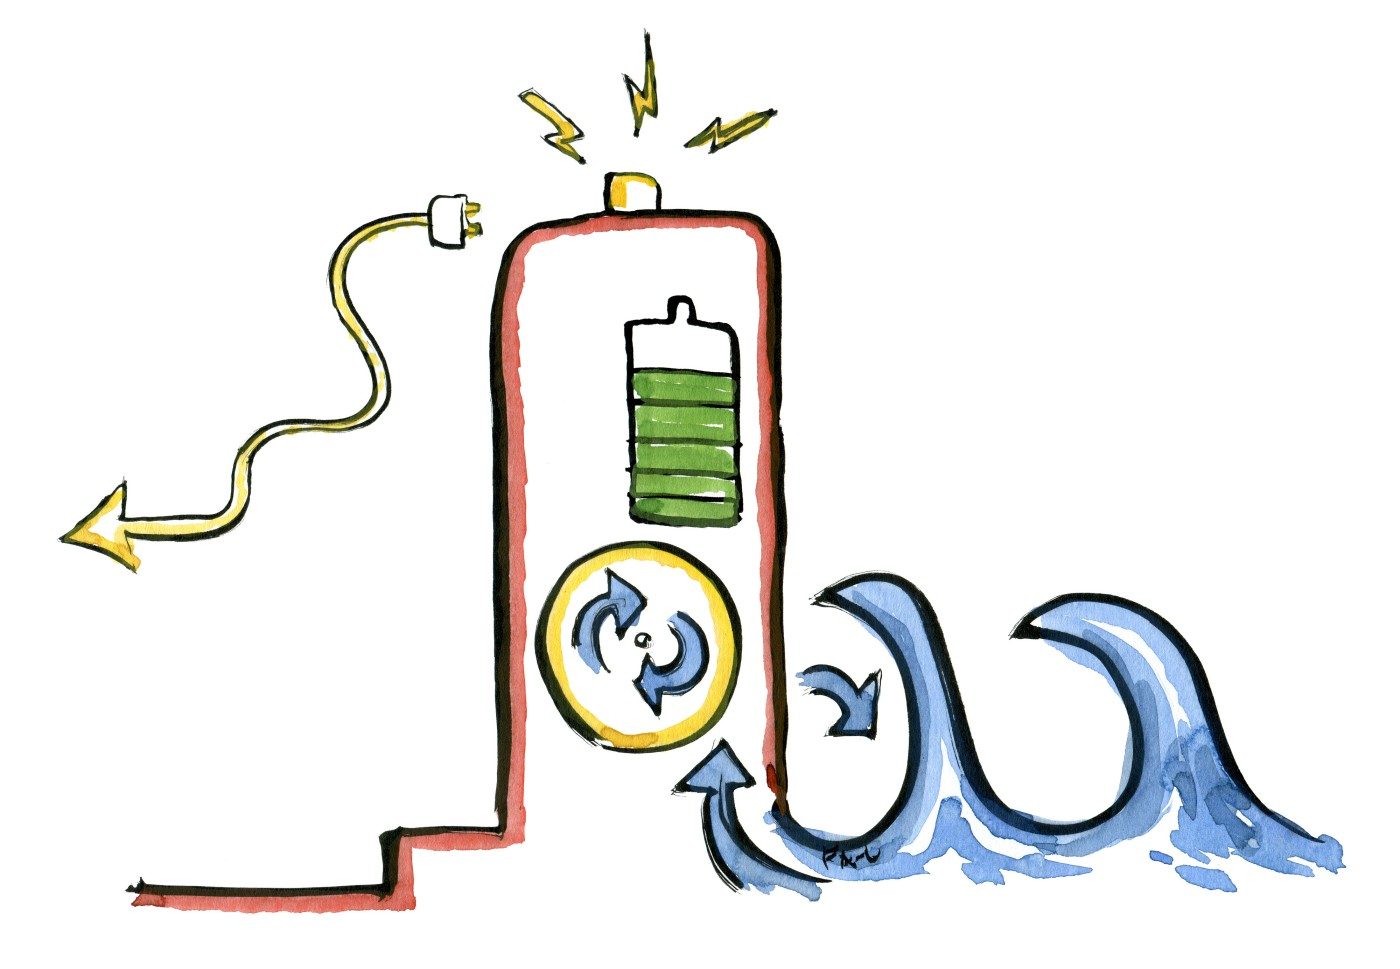 Drawing of a harbor like wall with electrical charging from energy in waves. illustration by Frits Ahlefeldt